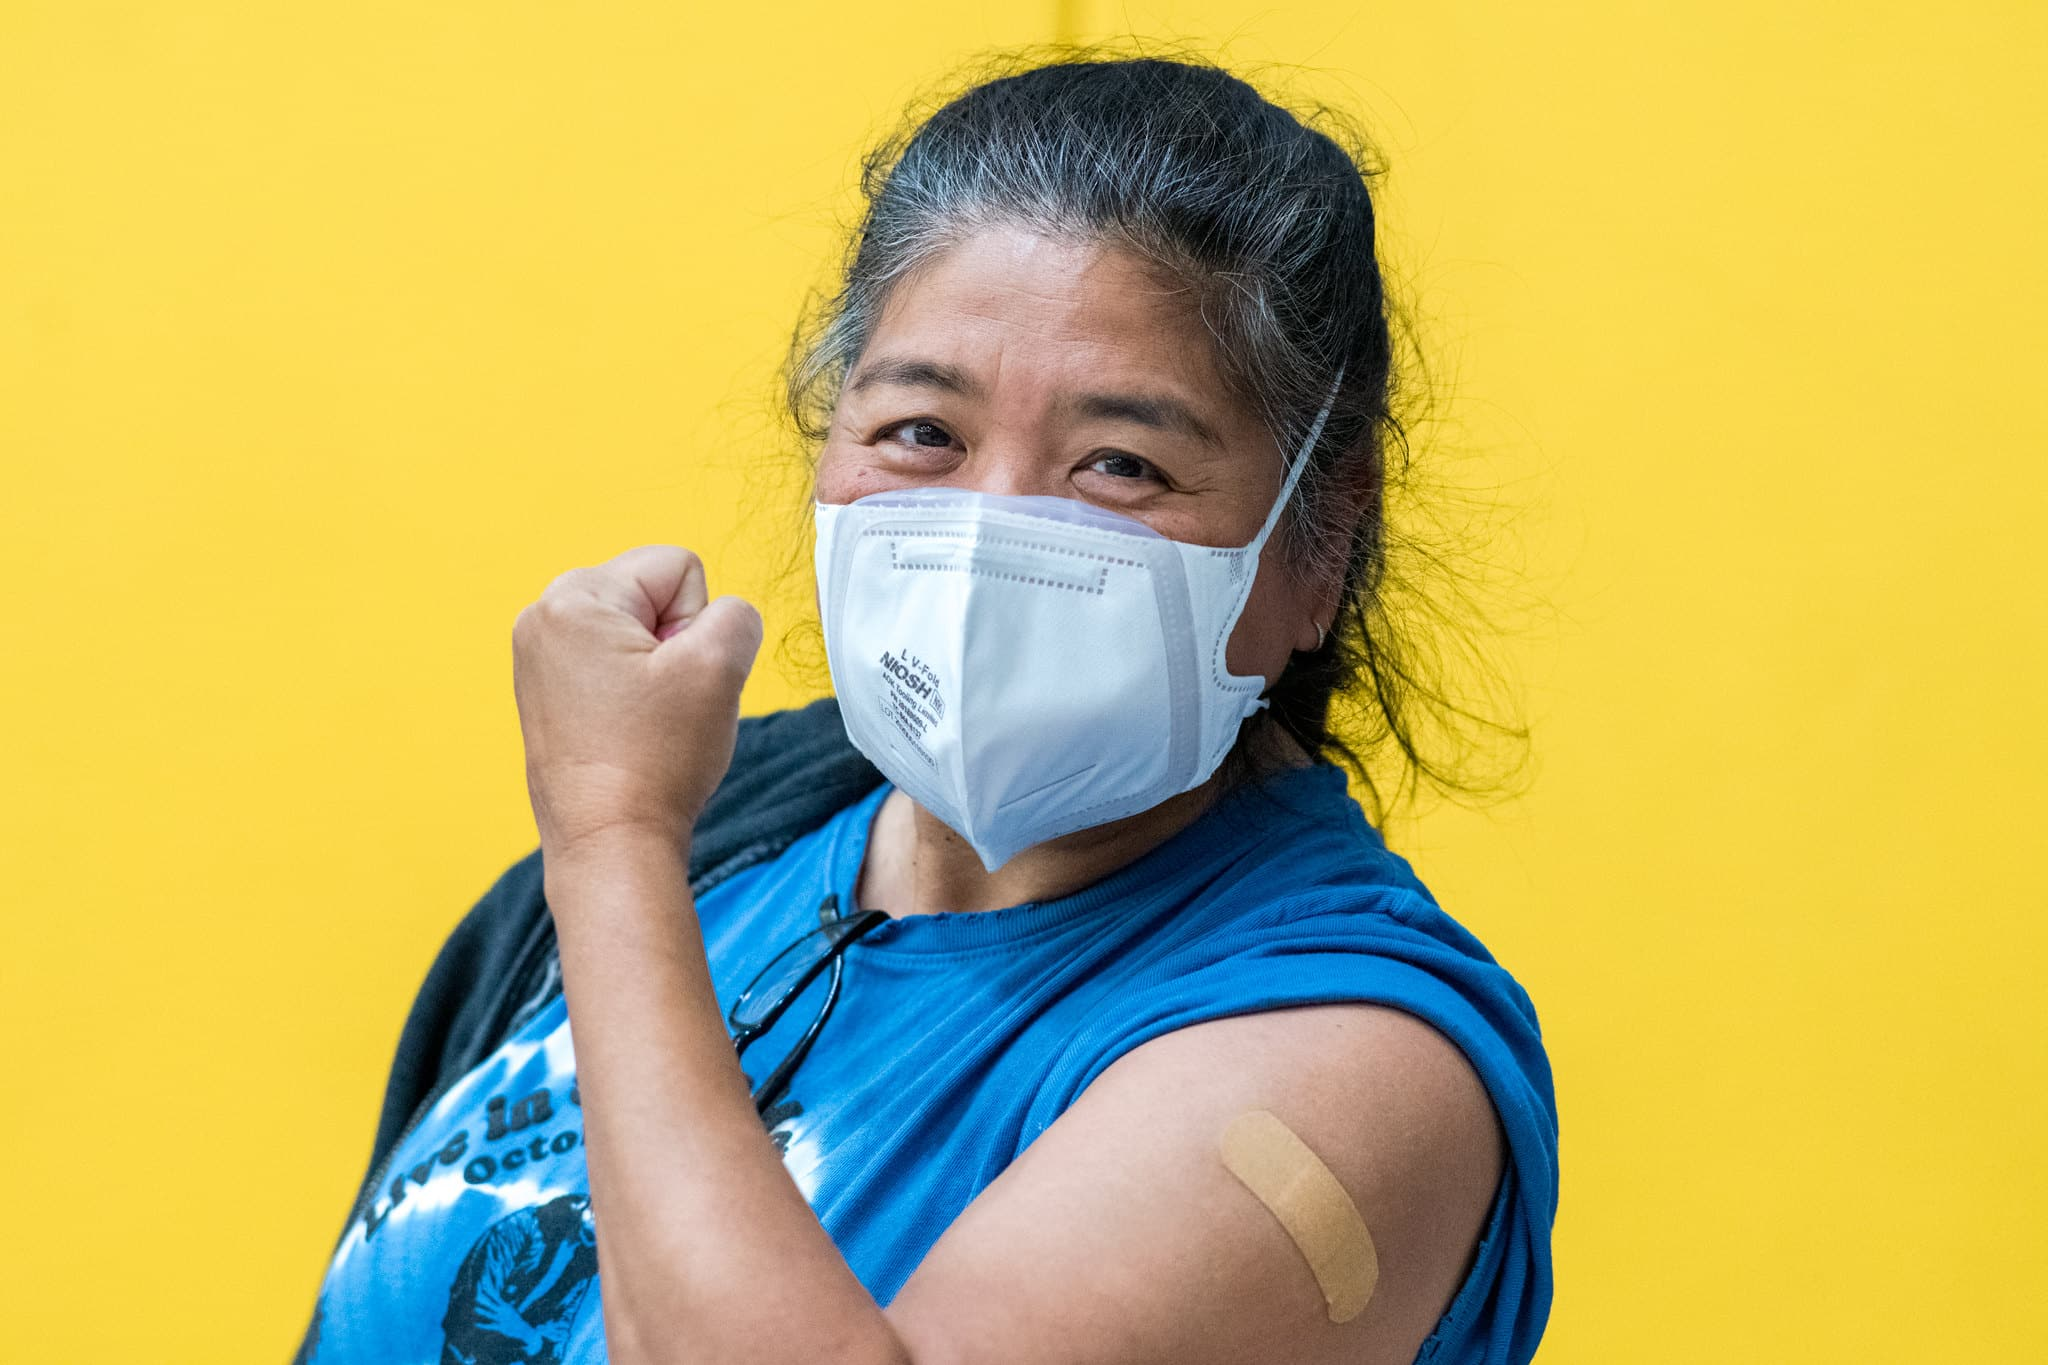 A woman shows off her arm where she received a COVID vaccine.